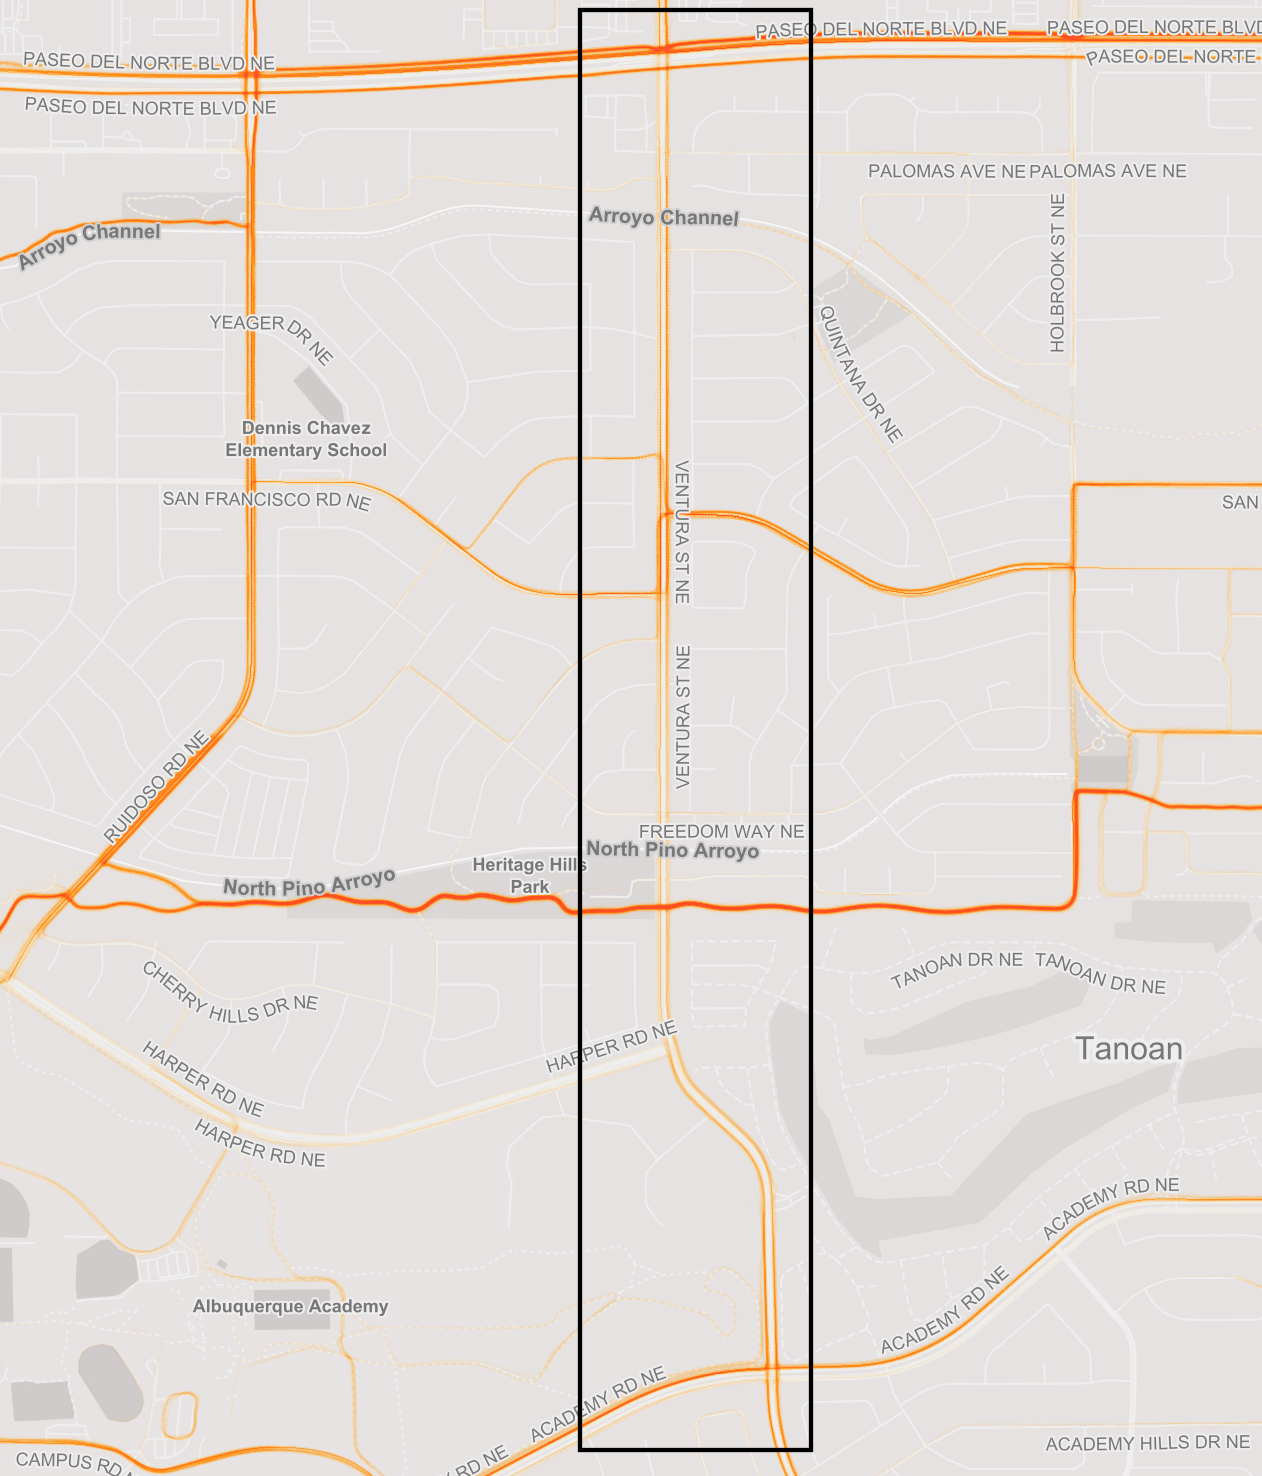 Albuquerque Academy Campus Map.A 5 Step Citizen Planning Process To Advocate For New Bike Lanes